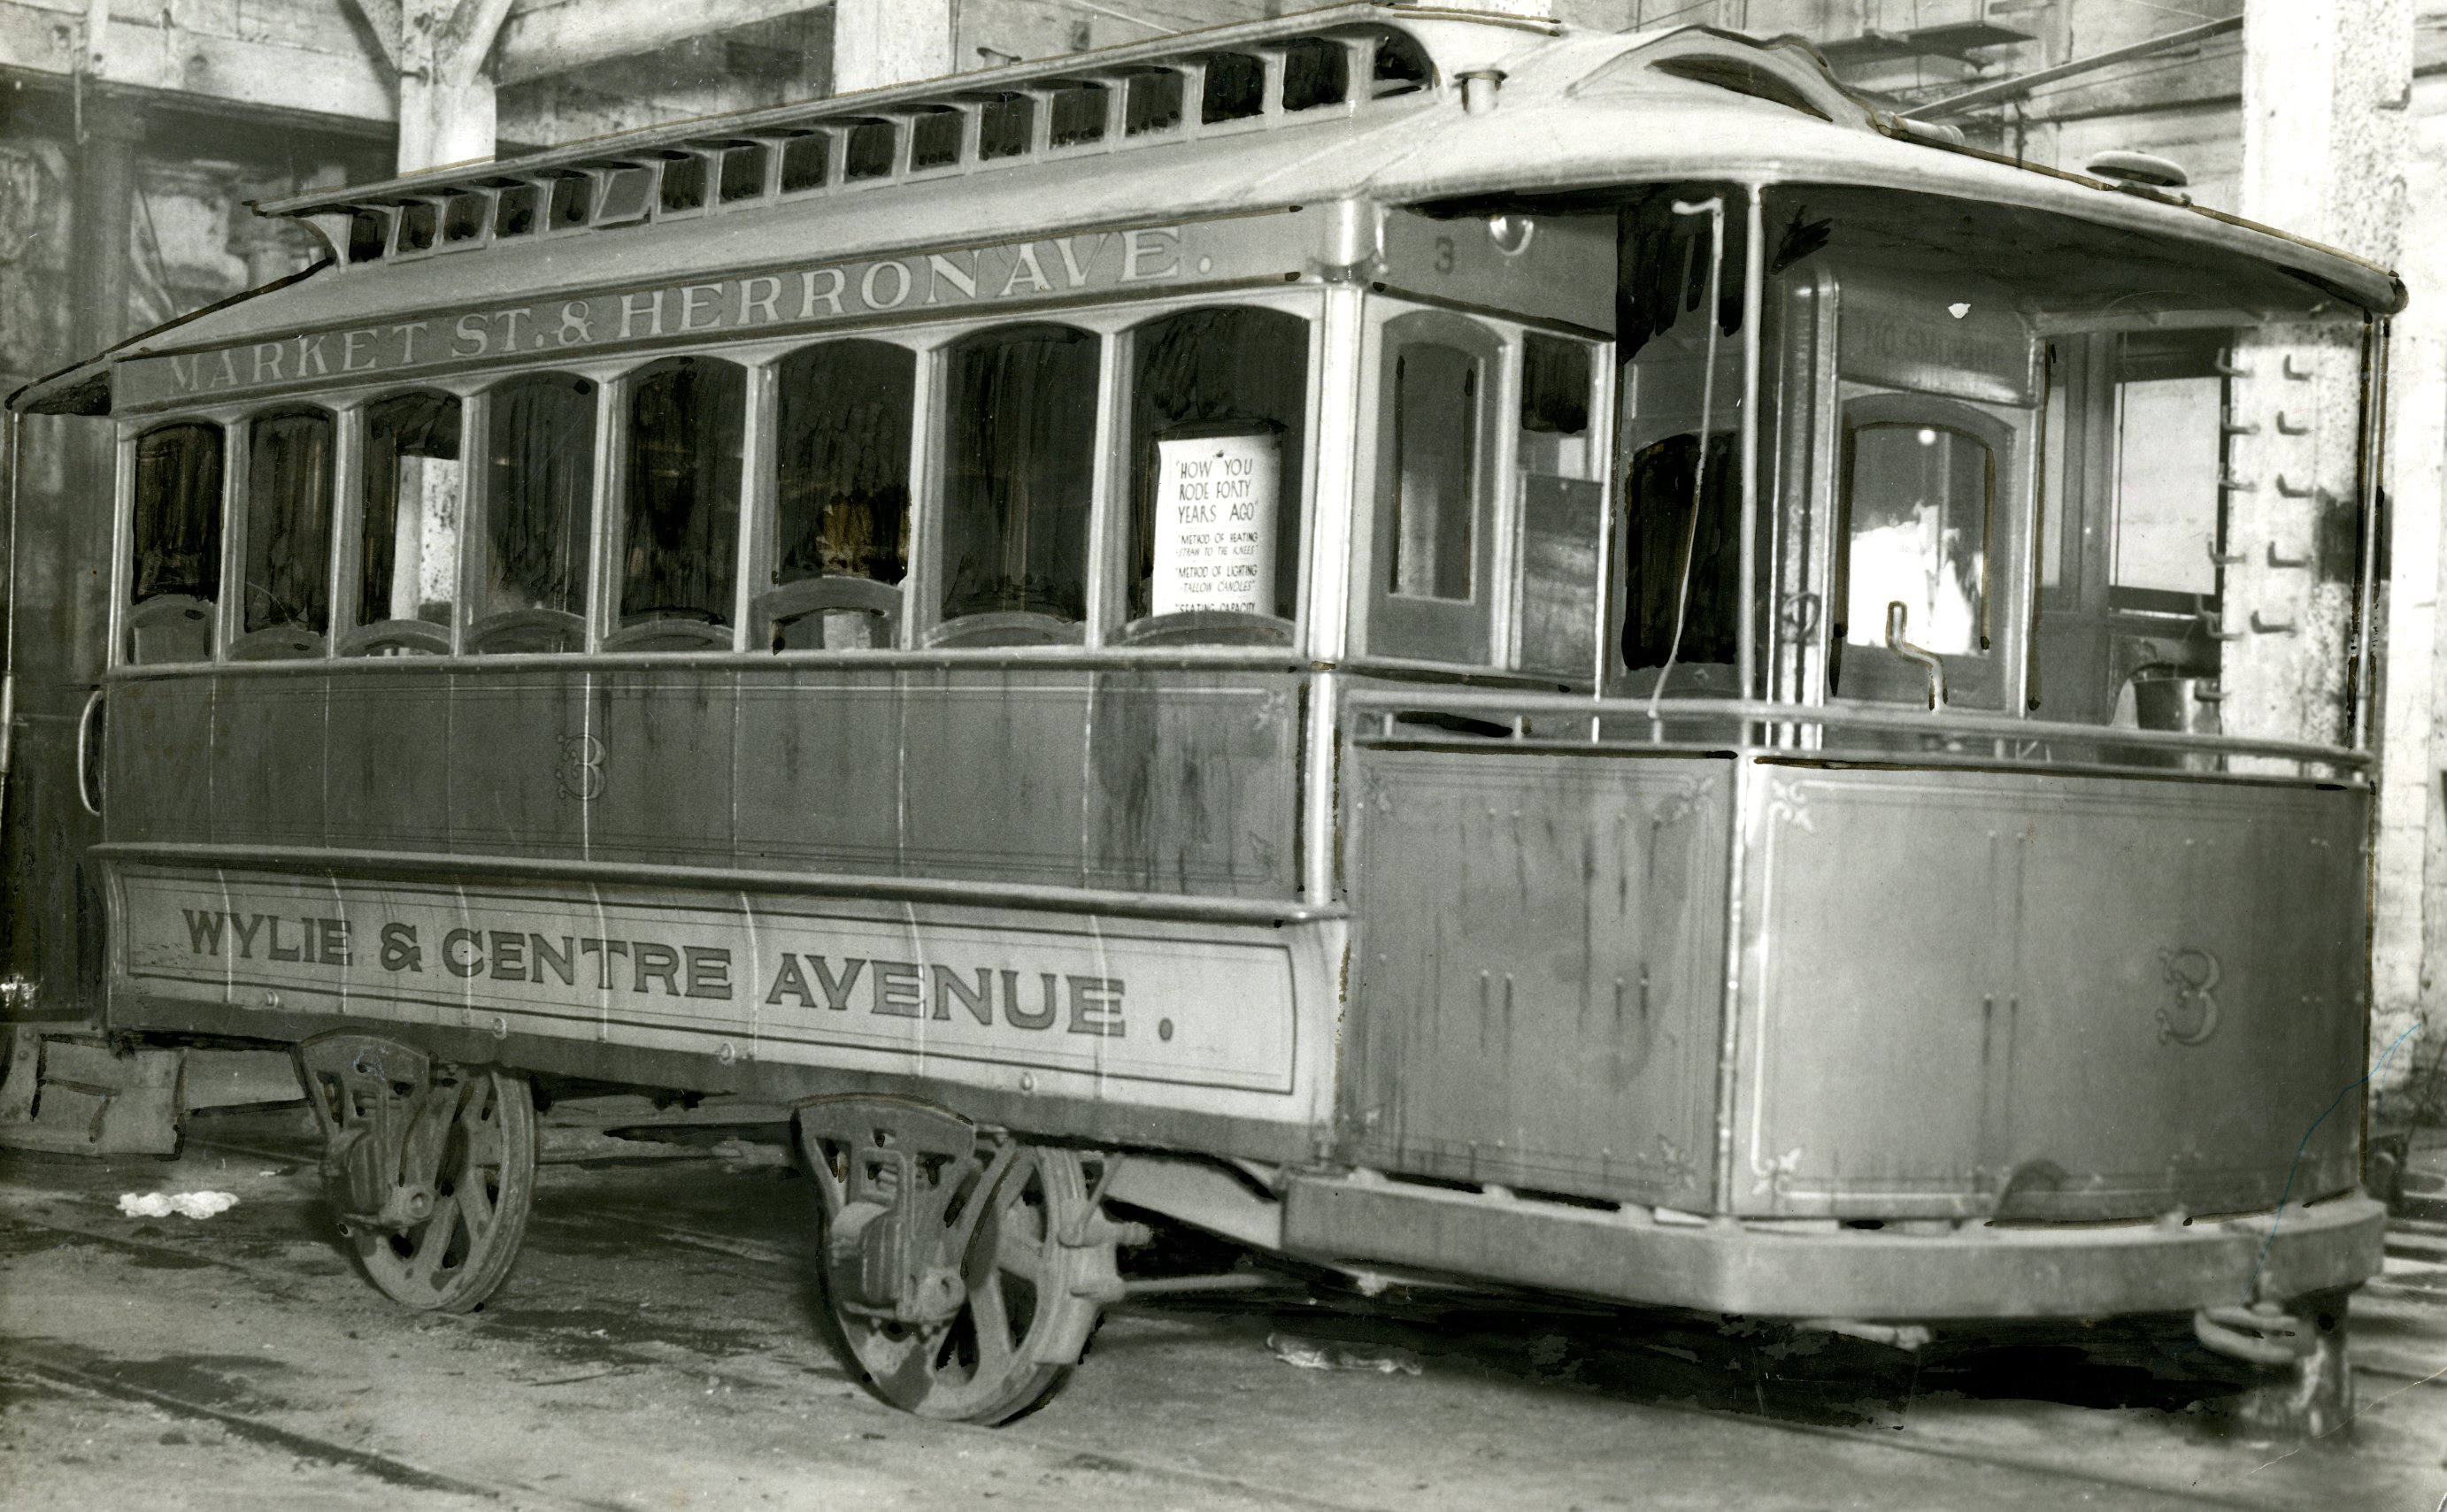 A street car which operated in the Hill District in the 1920s